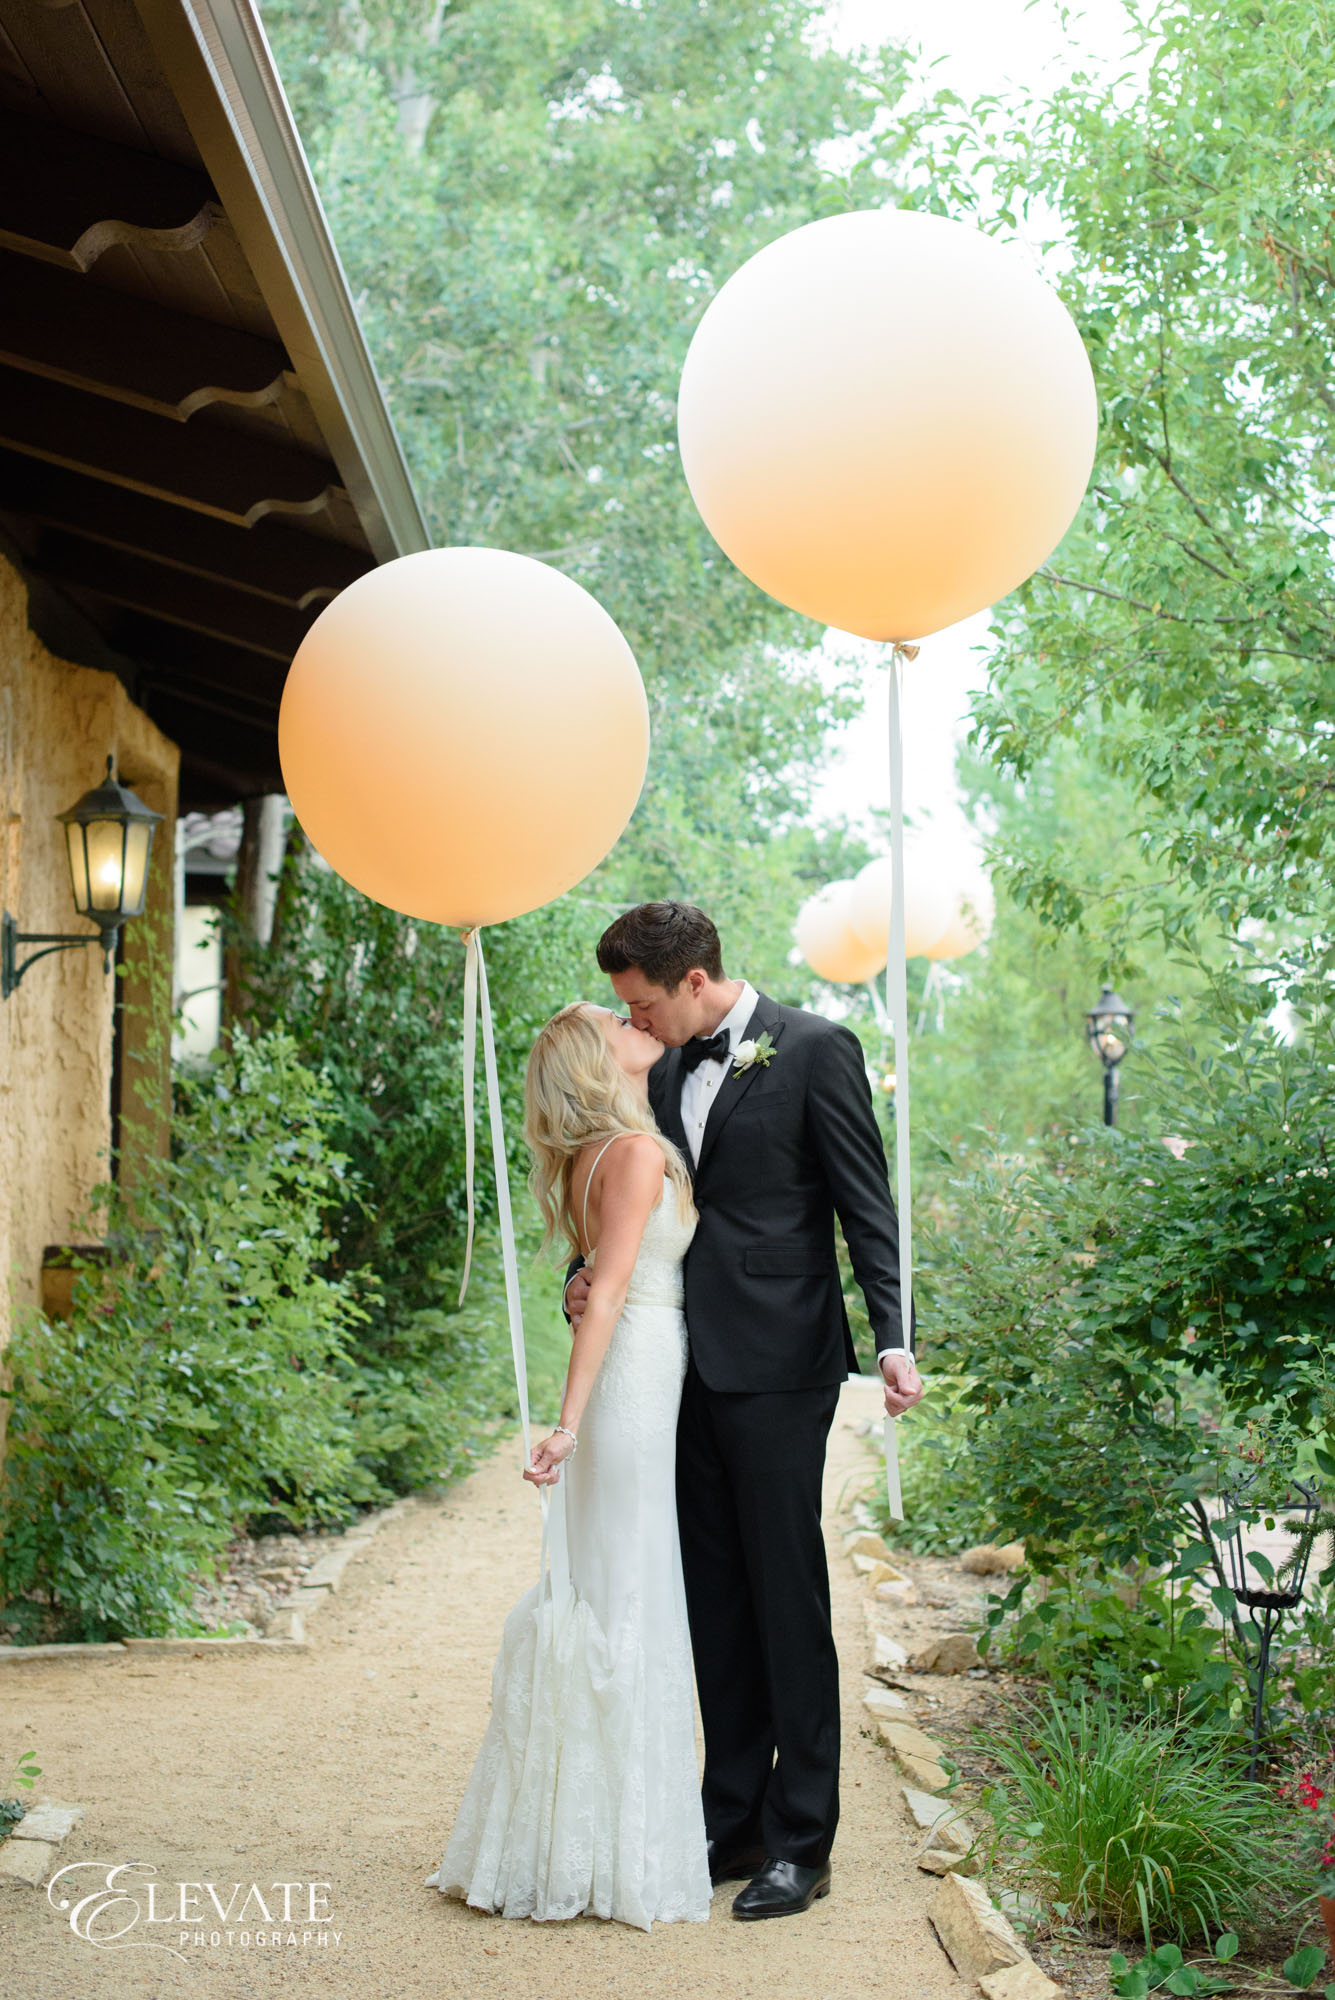 wedding balloon peach